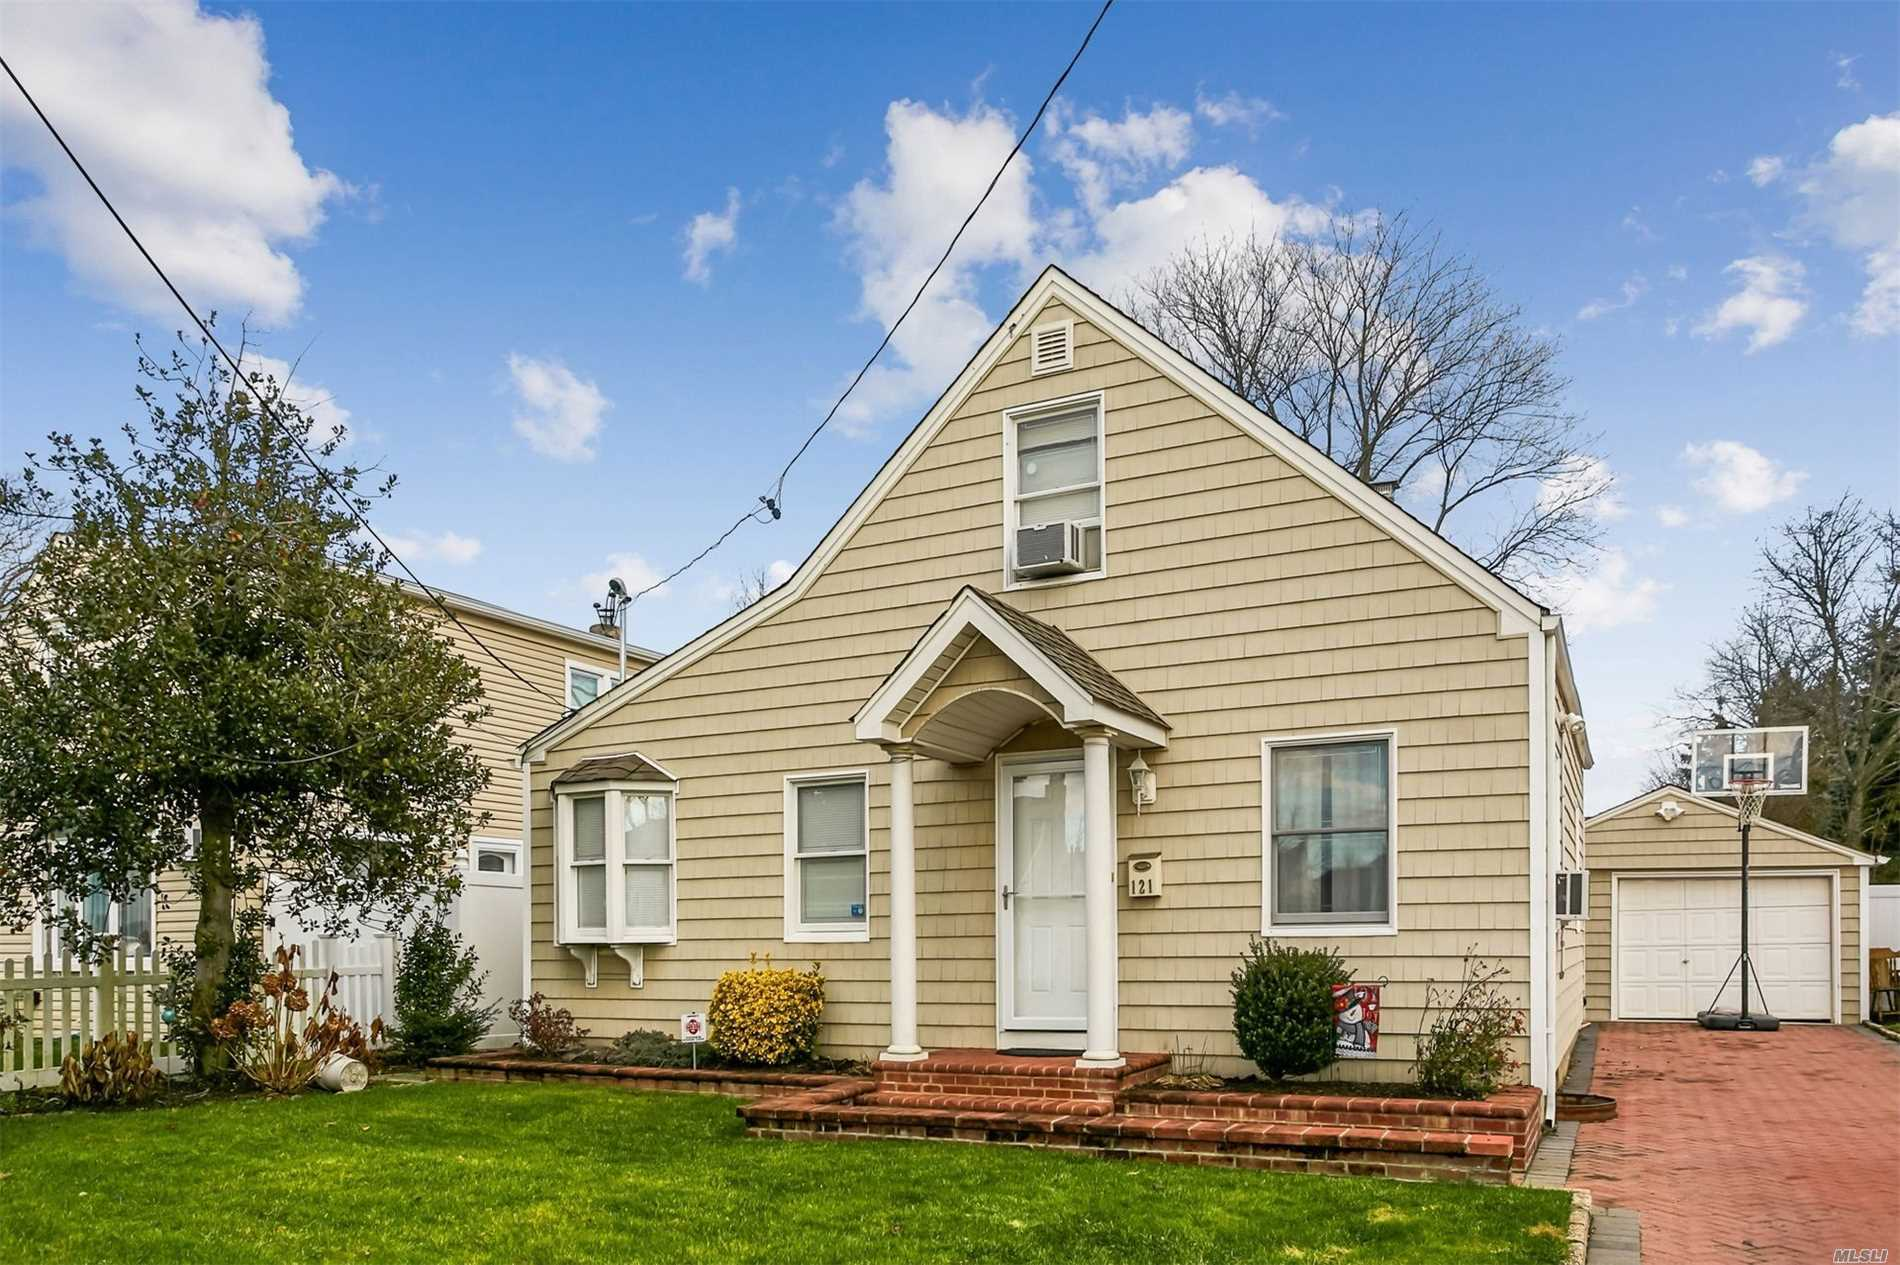 Photo of home for sale at 121 Rosebud Ave, Merrick NY